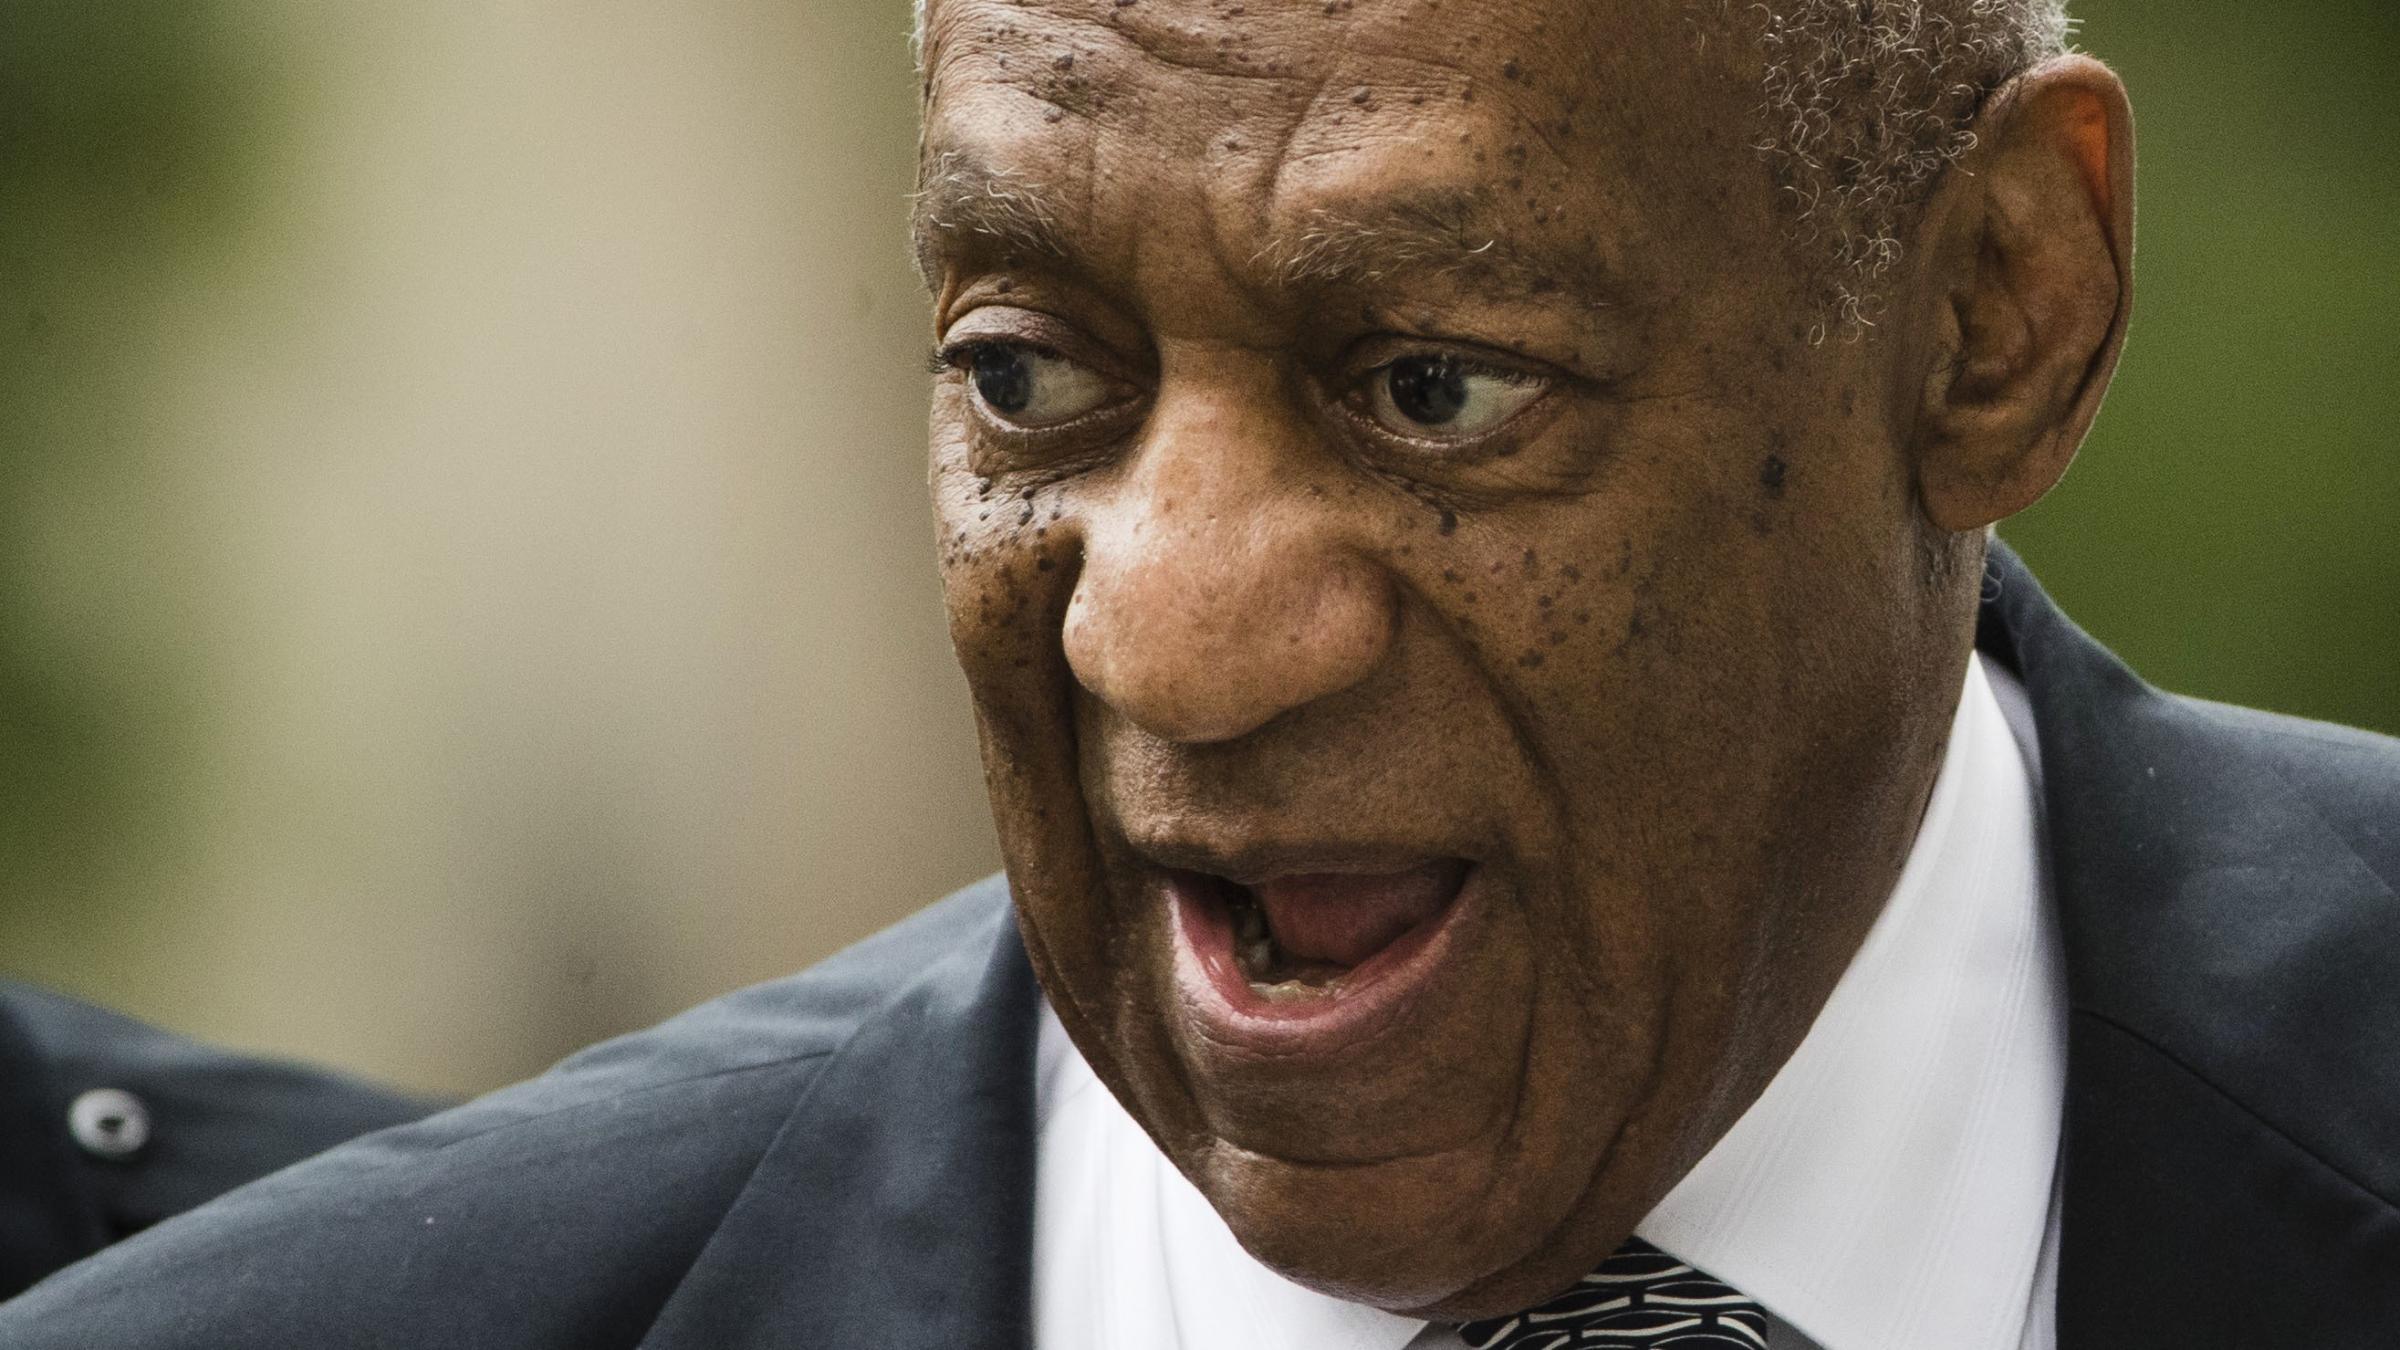 Cosby trial: Judge gets frustrated, denies request for a mistrial